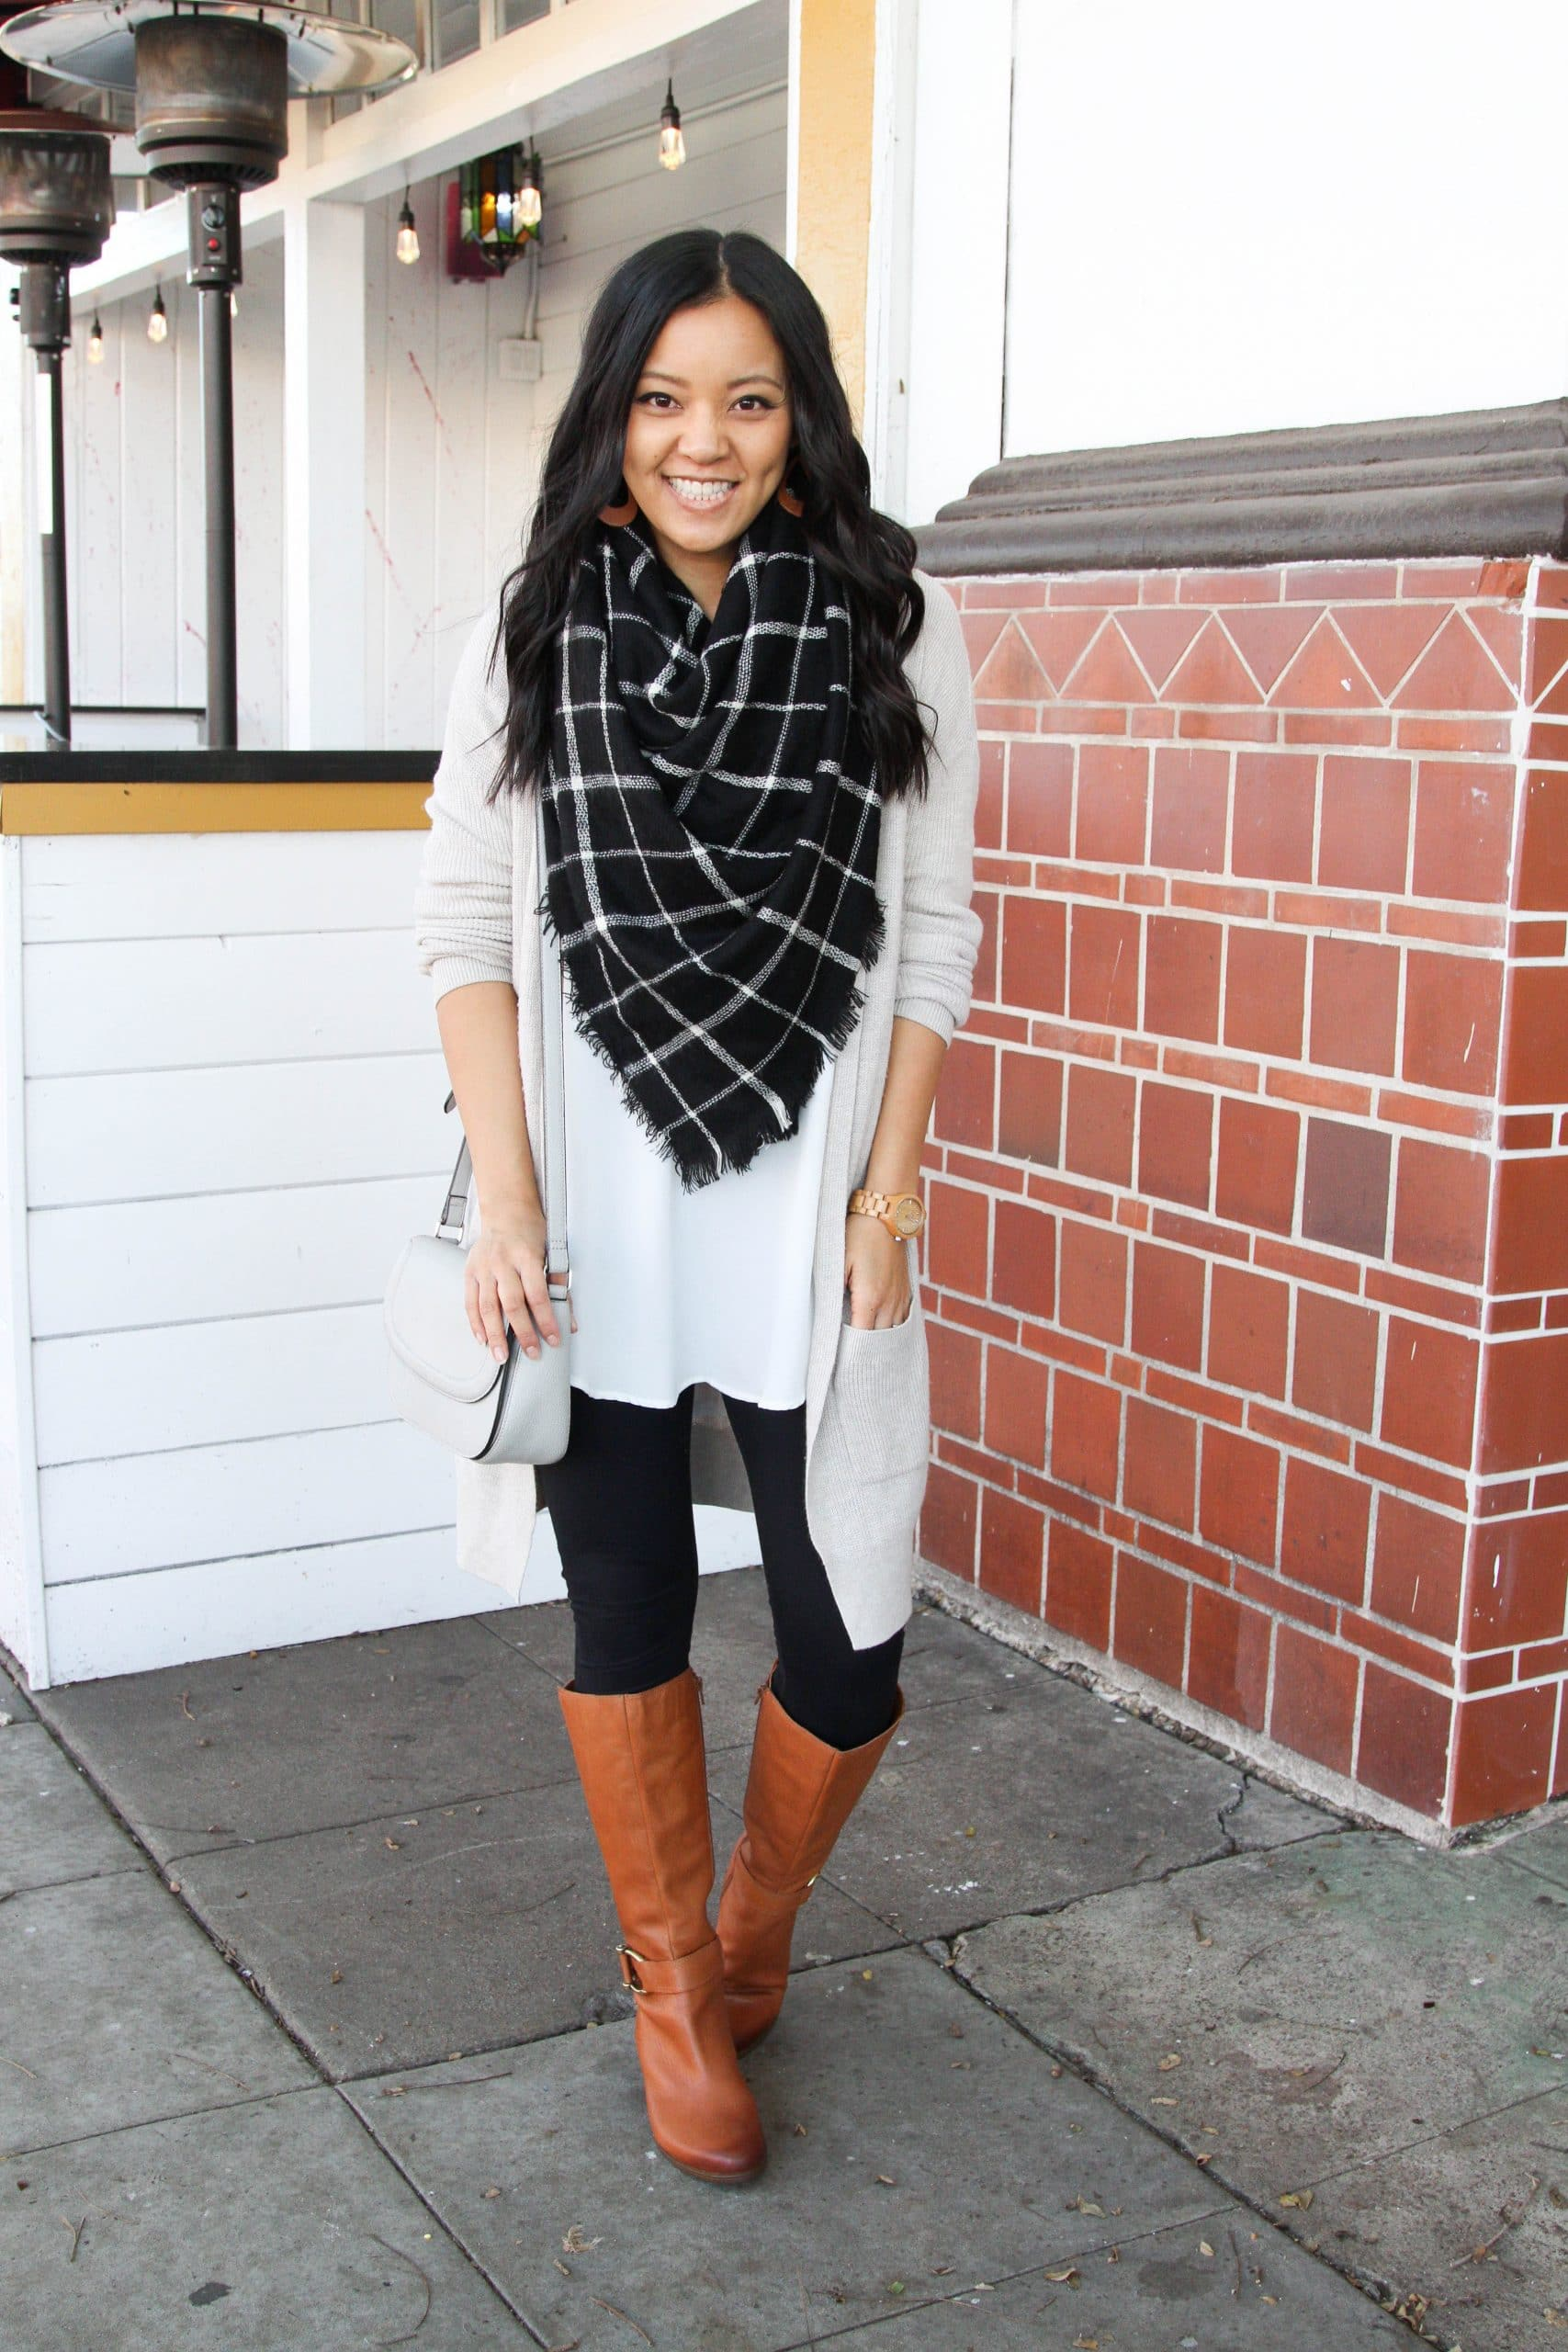 Winter Leggings Outfit: white tunic + black leggings + cream long cardigan + black and white plaid blanket scarf + cognac tall boots + grey crossbody bag + brown leather earrings